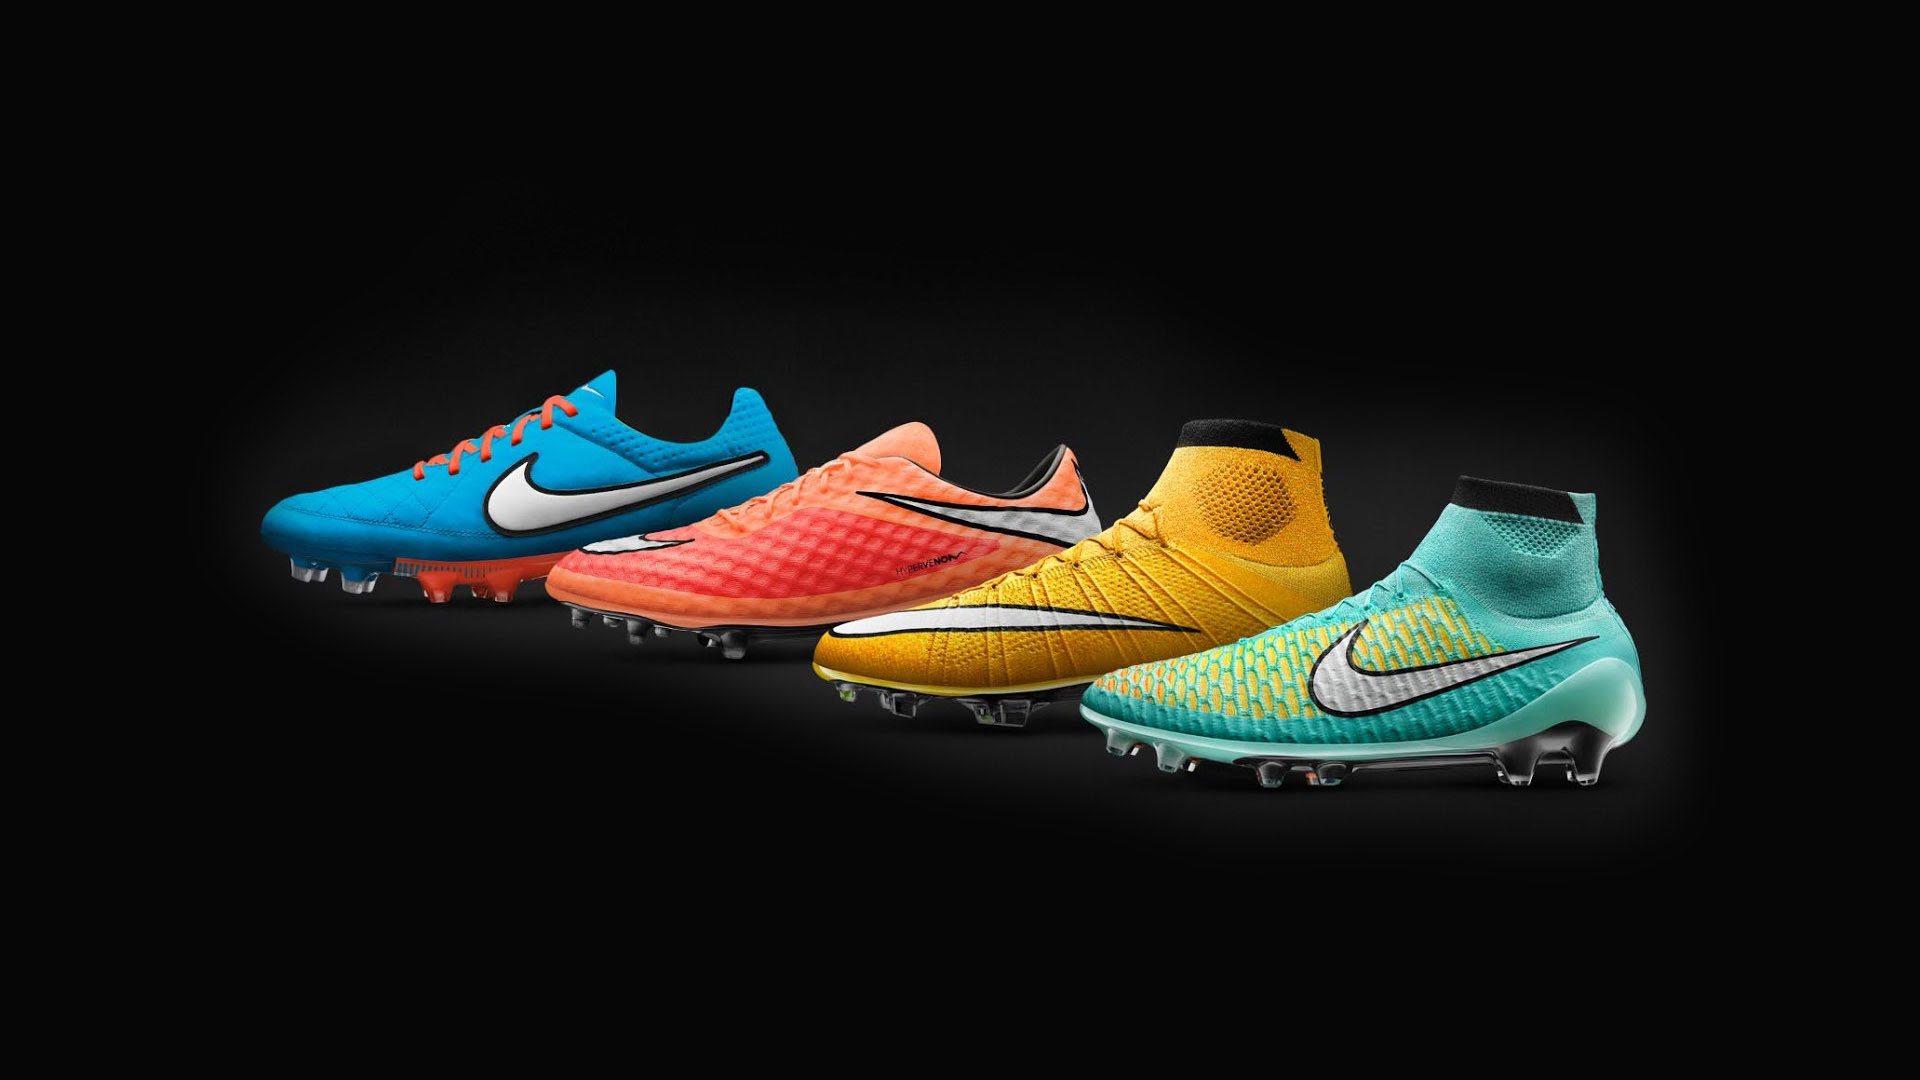 Nike Soccer Shoes At Soccer Soccer Cleats Nike High Tops